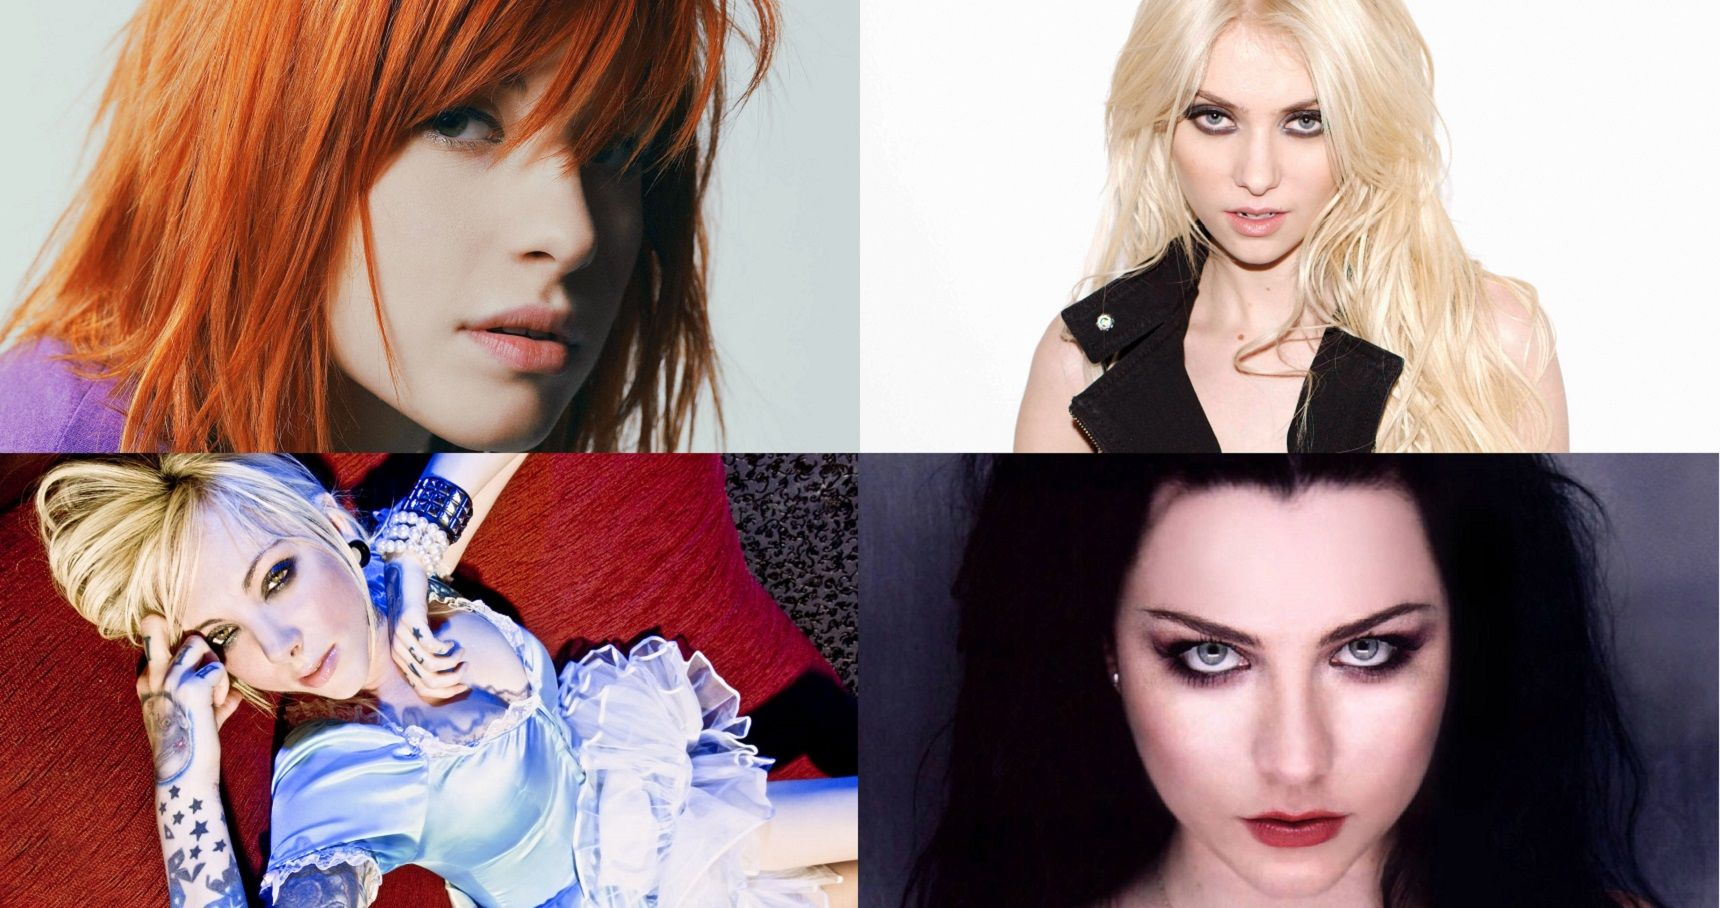 The 20 Hottest Women In Rock And Metal